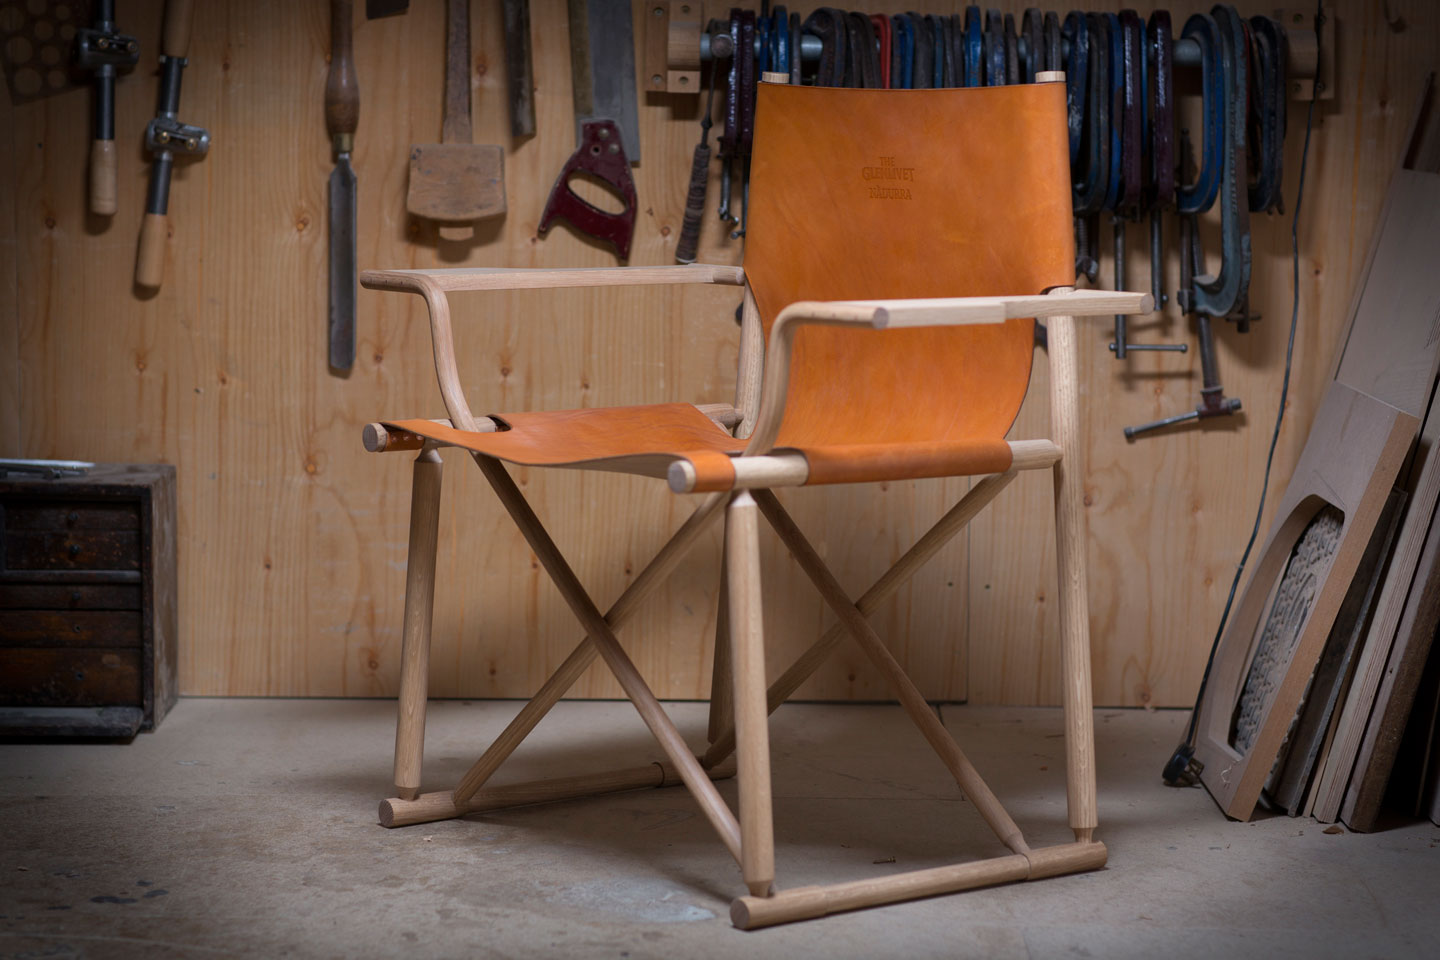 The Glenlivet Nadurra Dram Chair by Gareth Neal at Maison & Objet | Yellowtrace